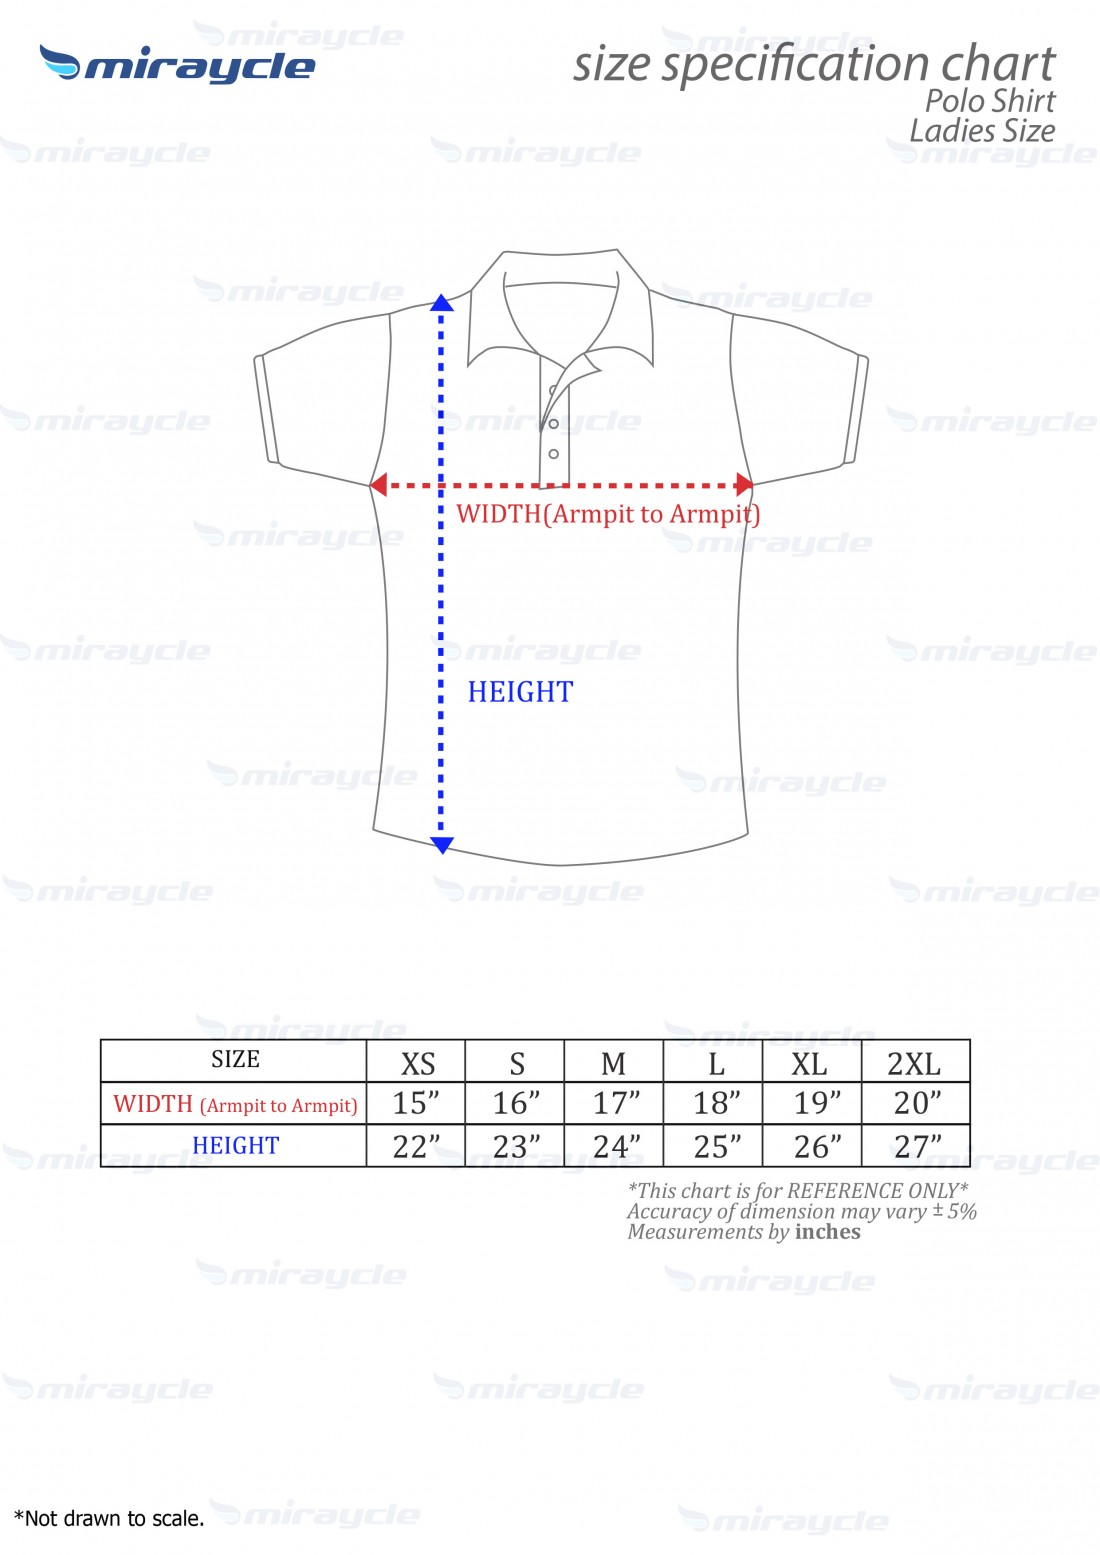 Ladies Polo Size Chart